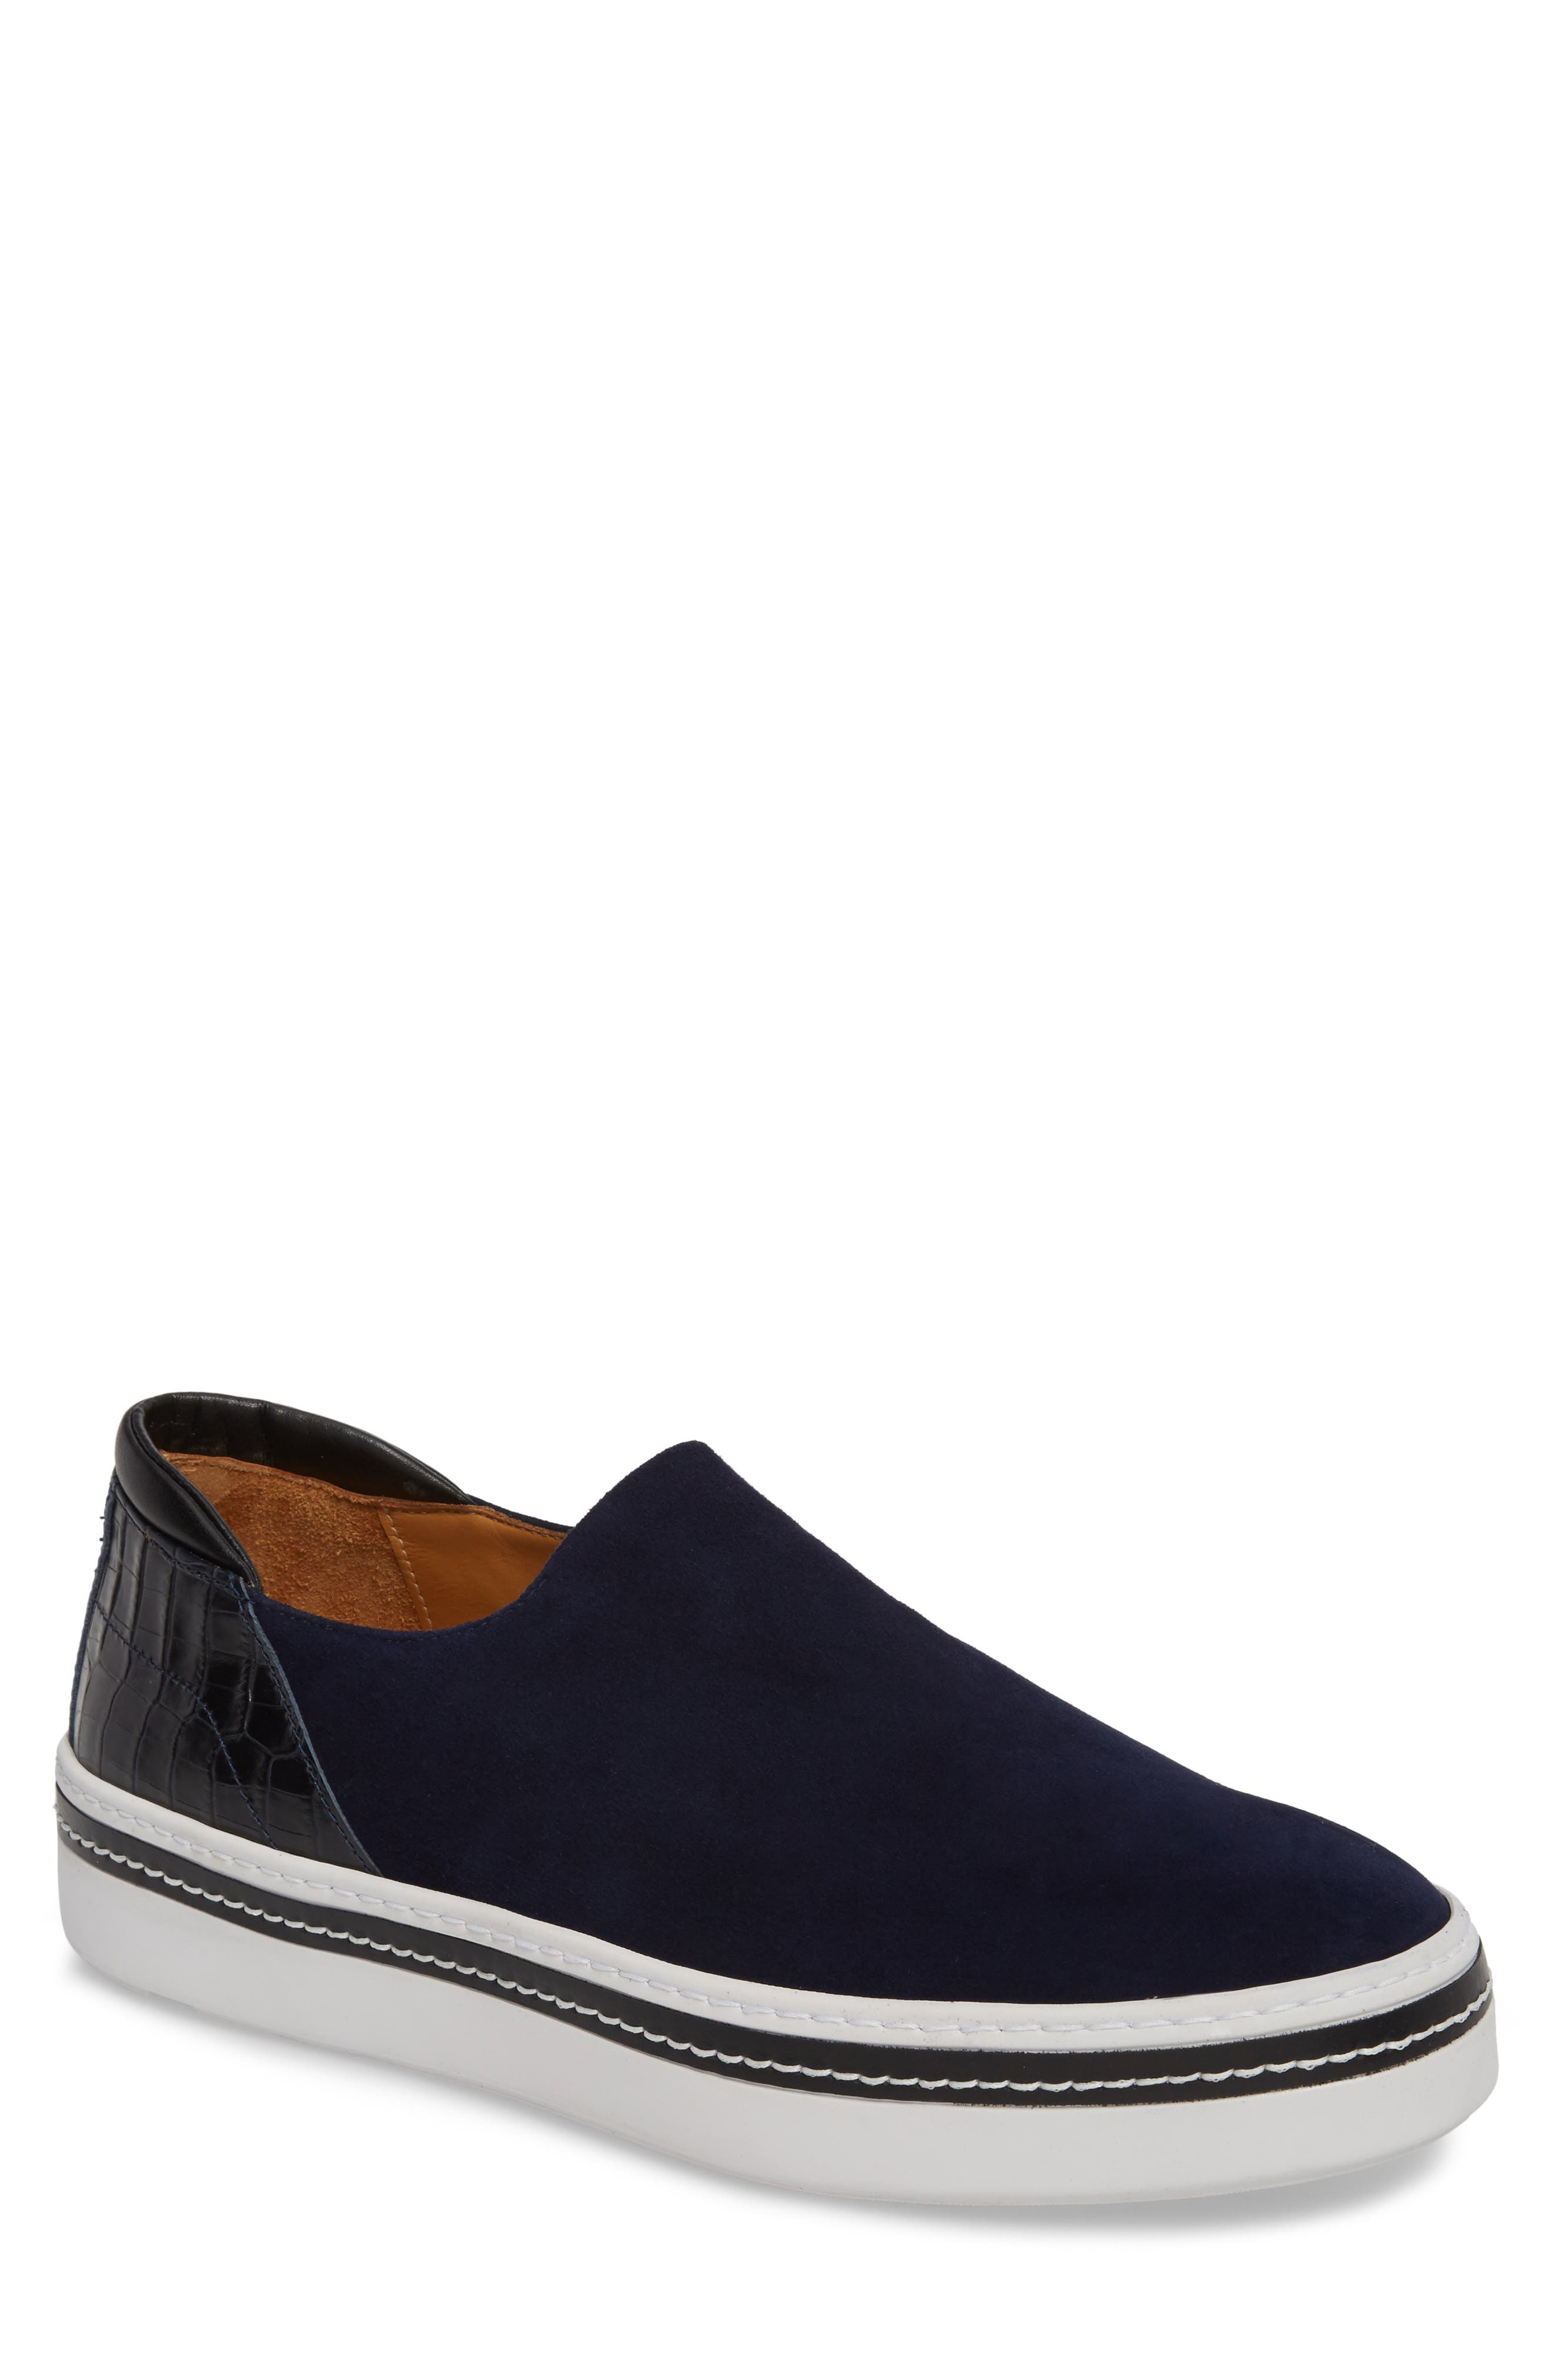 Stan Slip-On Sneaker,                             Main thumbnail 1, color,                             Midnight Blue Suede